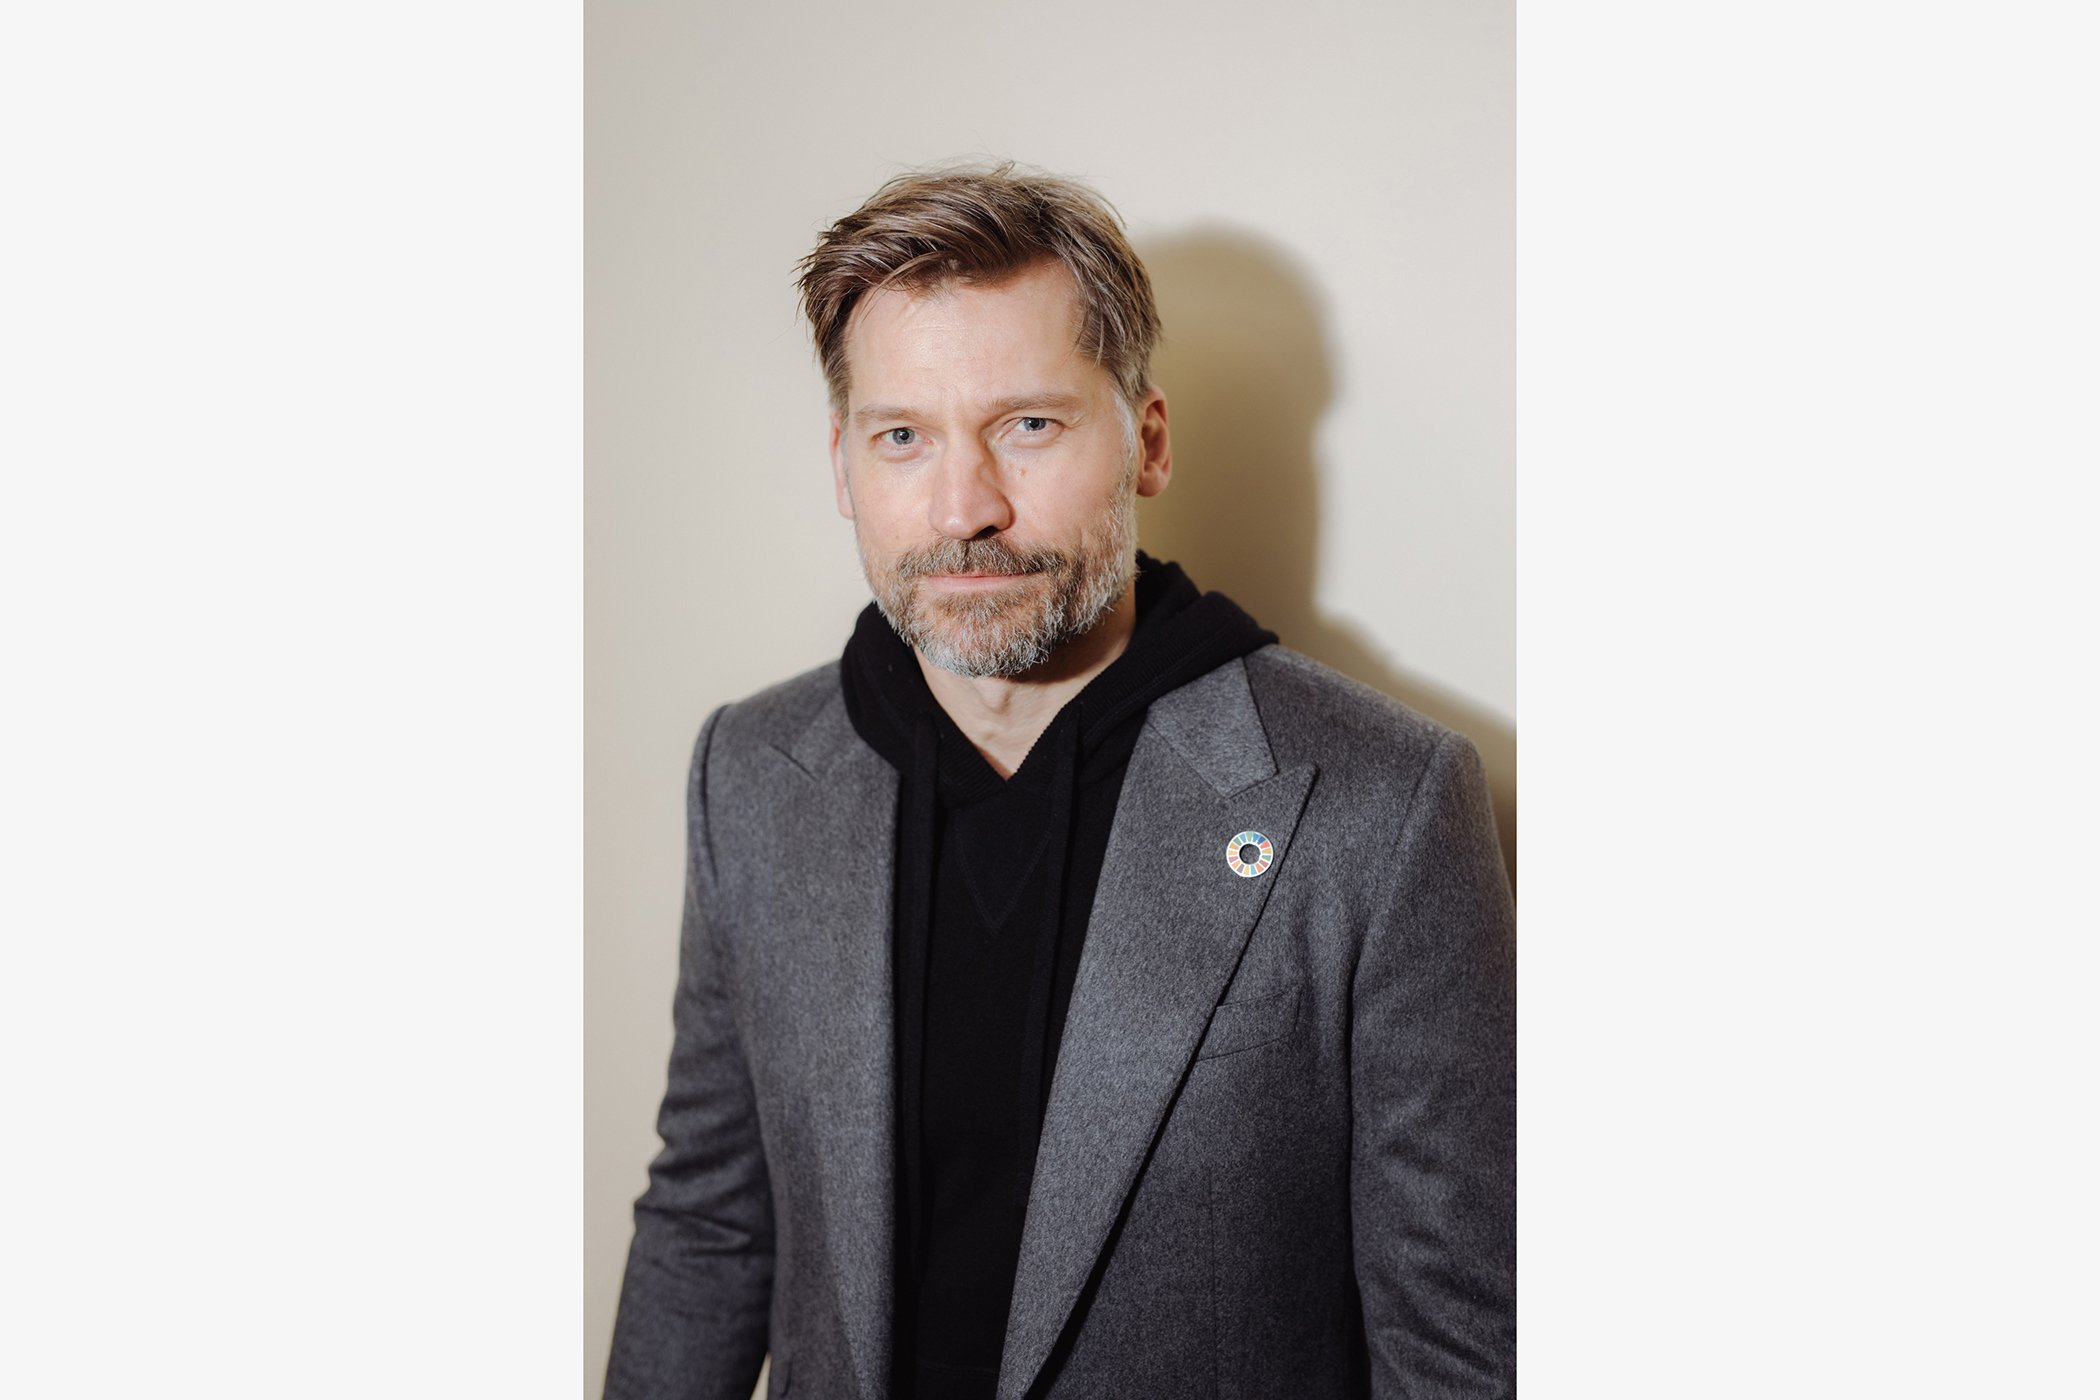 Grey_Hutton_GC_Prize_Nikolaj_Coster_Waldau-1.jpg